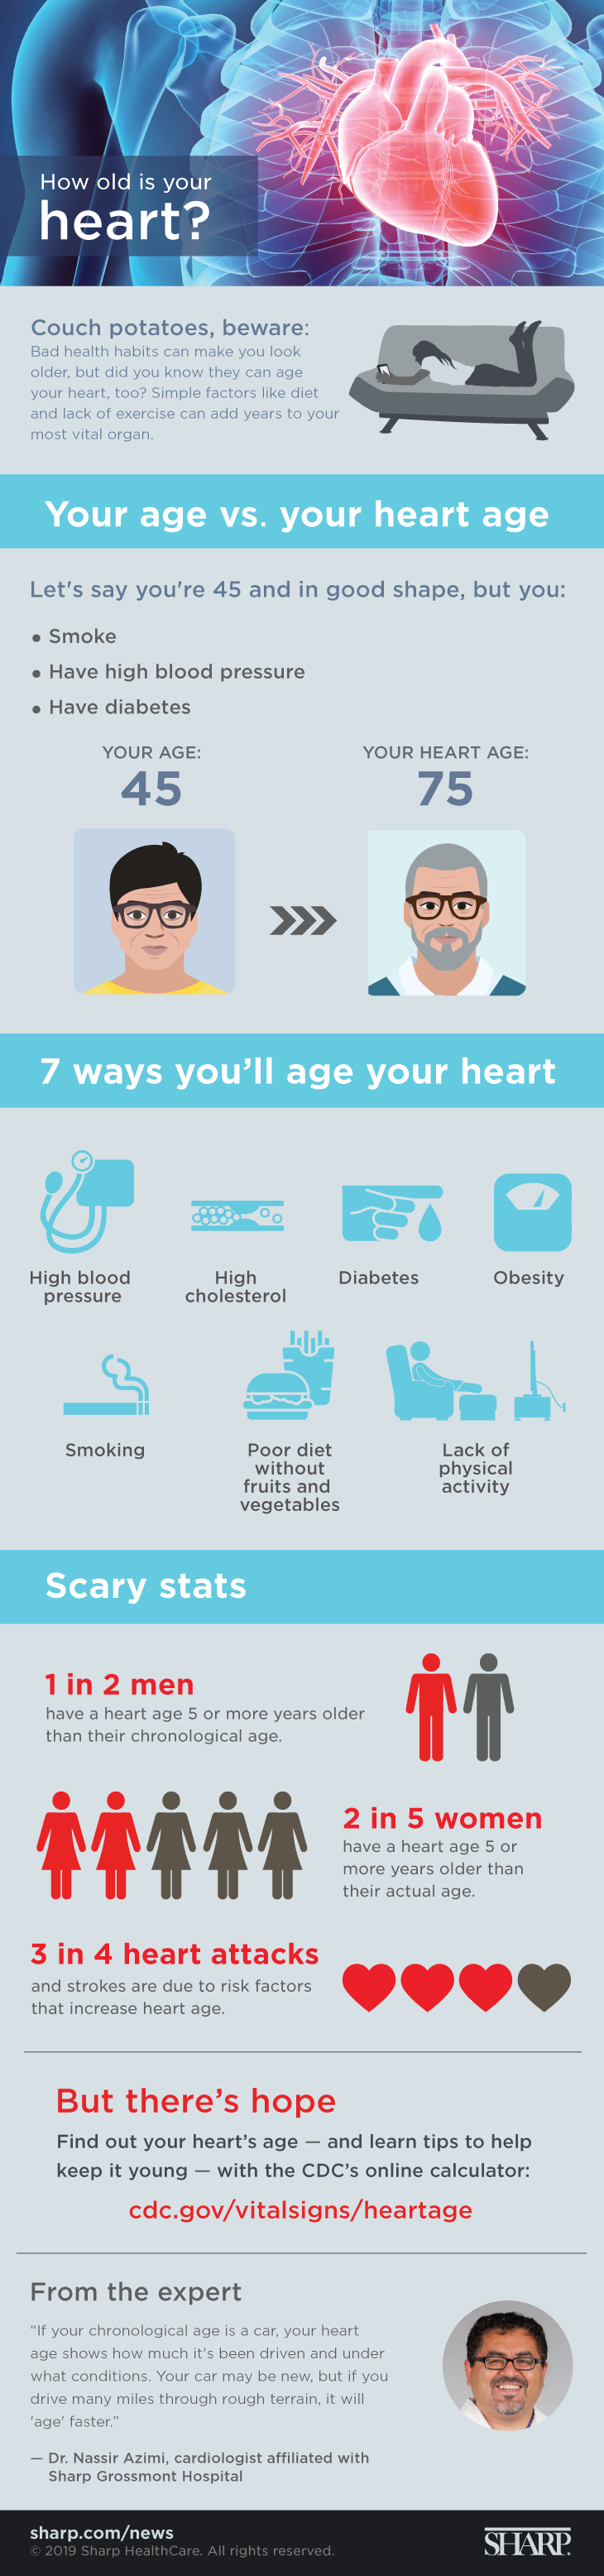 How old is your heart? (infographic) Couch potatoes, beware: Bad health habits can make you look older, but did you know ehy can age your heart, too? Simple factors like diet and lack of exercise can add years to your most vital organ. Your age vs. your heart age. Let's say you're 45 and in good shape, but you smoke, have high blood pressure and have diabetes. Your age: 45. Your heart age: 75. 7 ways you'll age your heart: High blood pressure, high cholesterol, diabetes, obesity, smoking, poor diet without fruits and vegetables, lack of physical activity. Scary stats. 1 in 2 men have a heart age of 5 or more years older than their chronological age. 2 in 5 women have a heart age 5 or more years older than their actual age. 3 in 4 heart attacks and strokes are due to risk factors that increase heart age. But there's hope. Find out your heart's age - and learn tips to help keep it young - with the CDC's online calculator: cdc.gov/vitalsigns/heartage. From the expert. If your chronological age is a car, your heart age shows how much it's been driven and under what conditions. Your car may be new, but if you drive many miles through rough terrain, it will age faster. - Dr. Nassir Azimi, cardiologist affiliated with Sharp Grossmont Hospital.